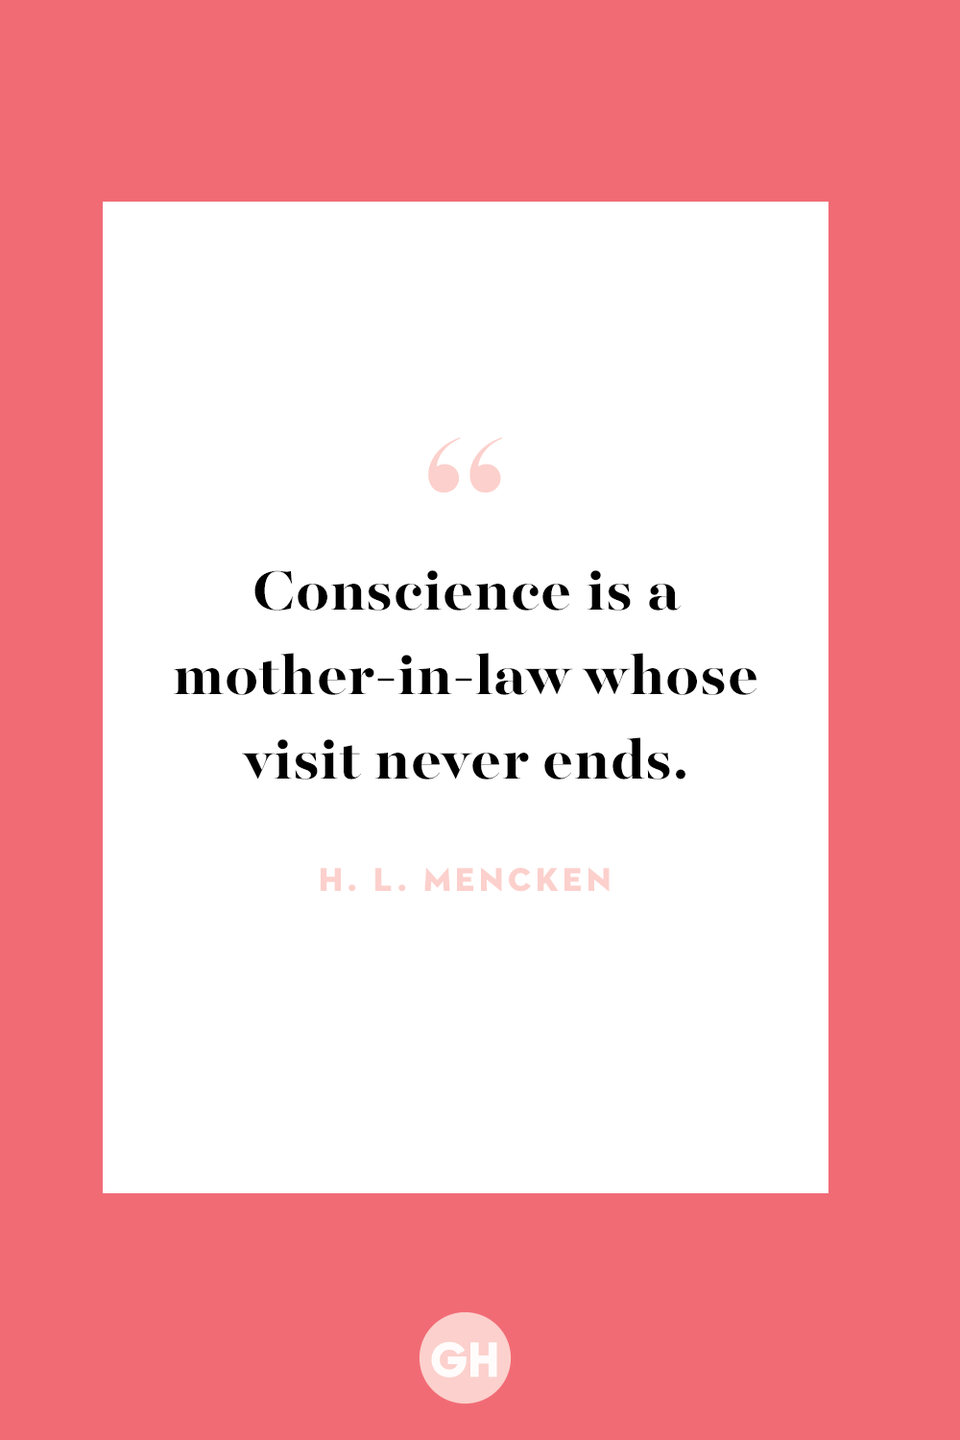 <p>Conscience is a mother-in-law whose visit never ends.</p>